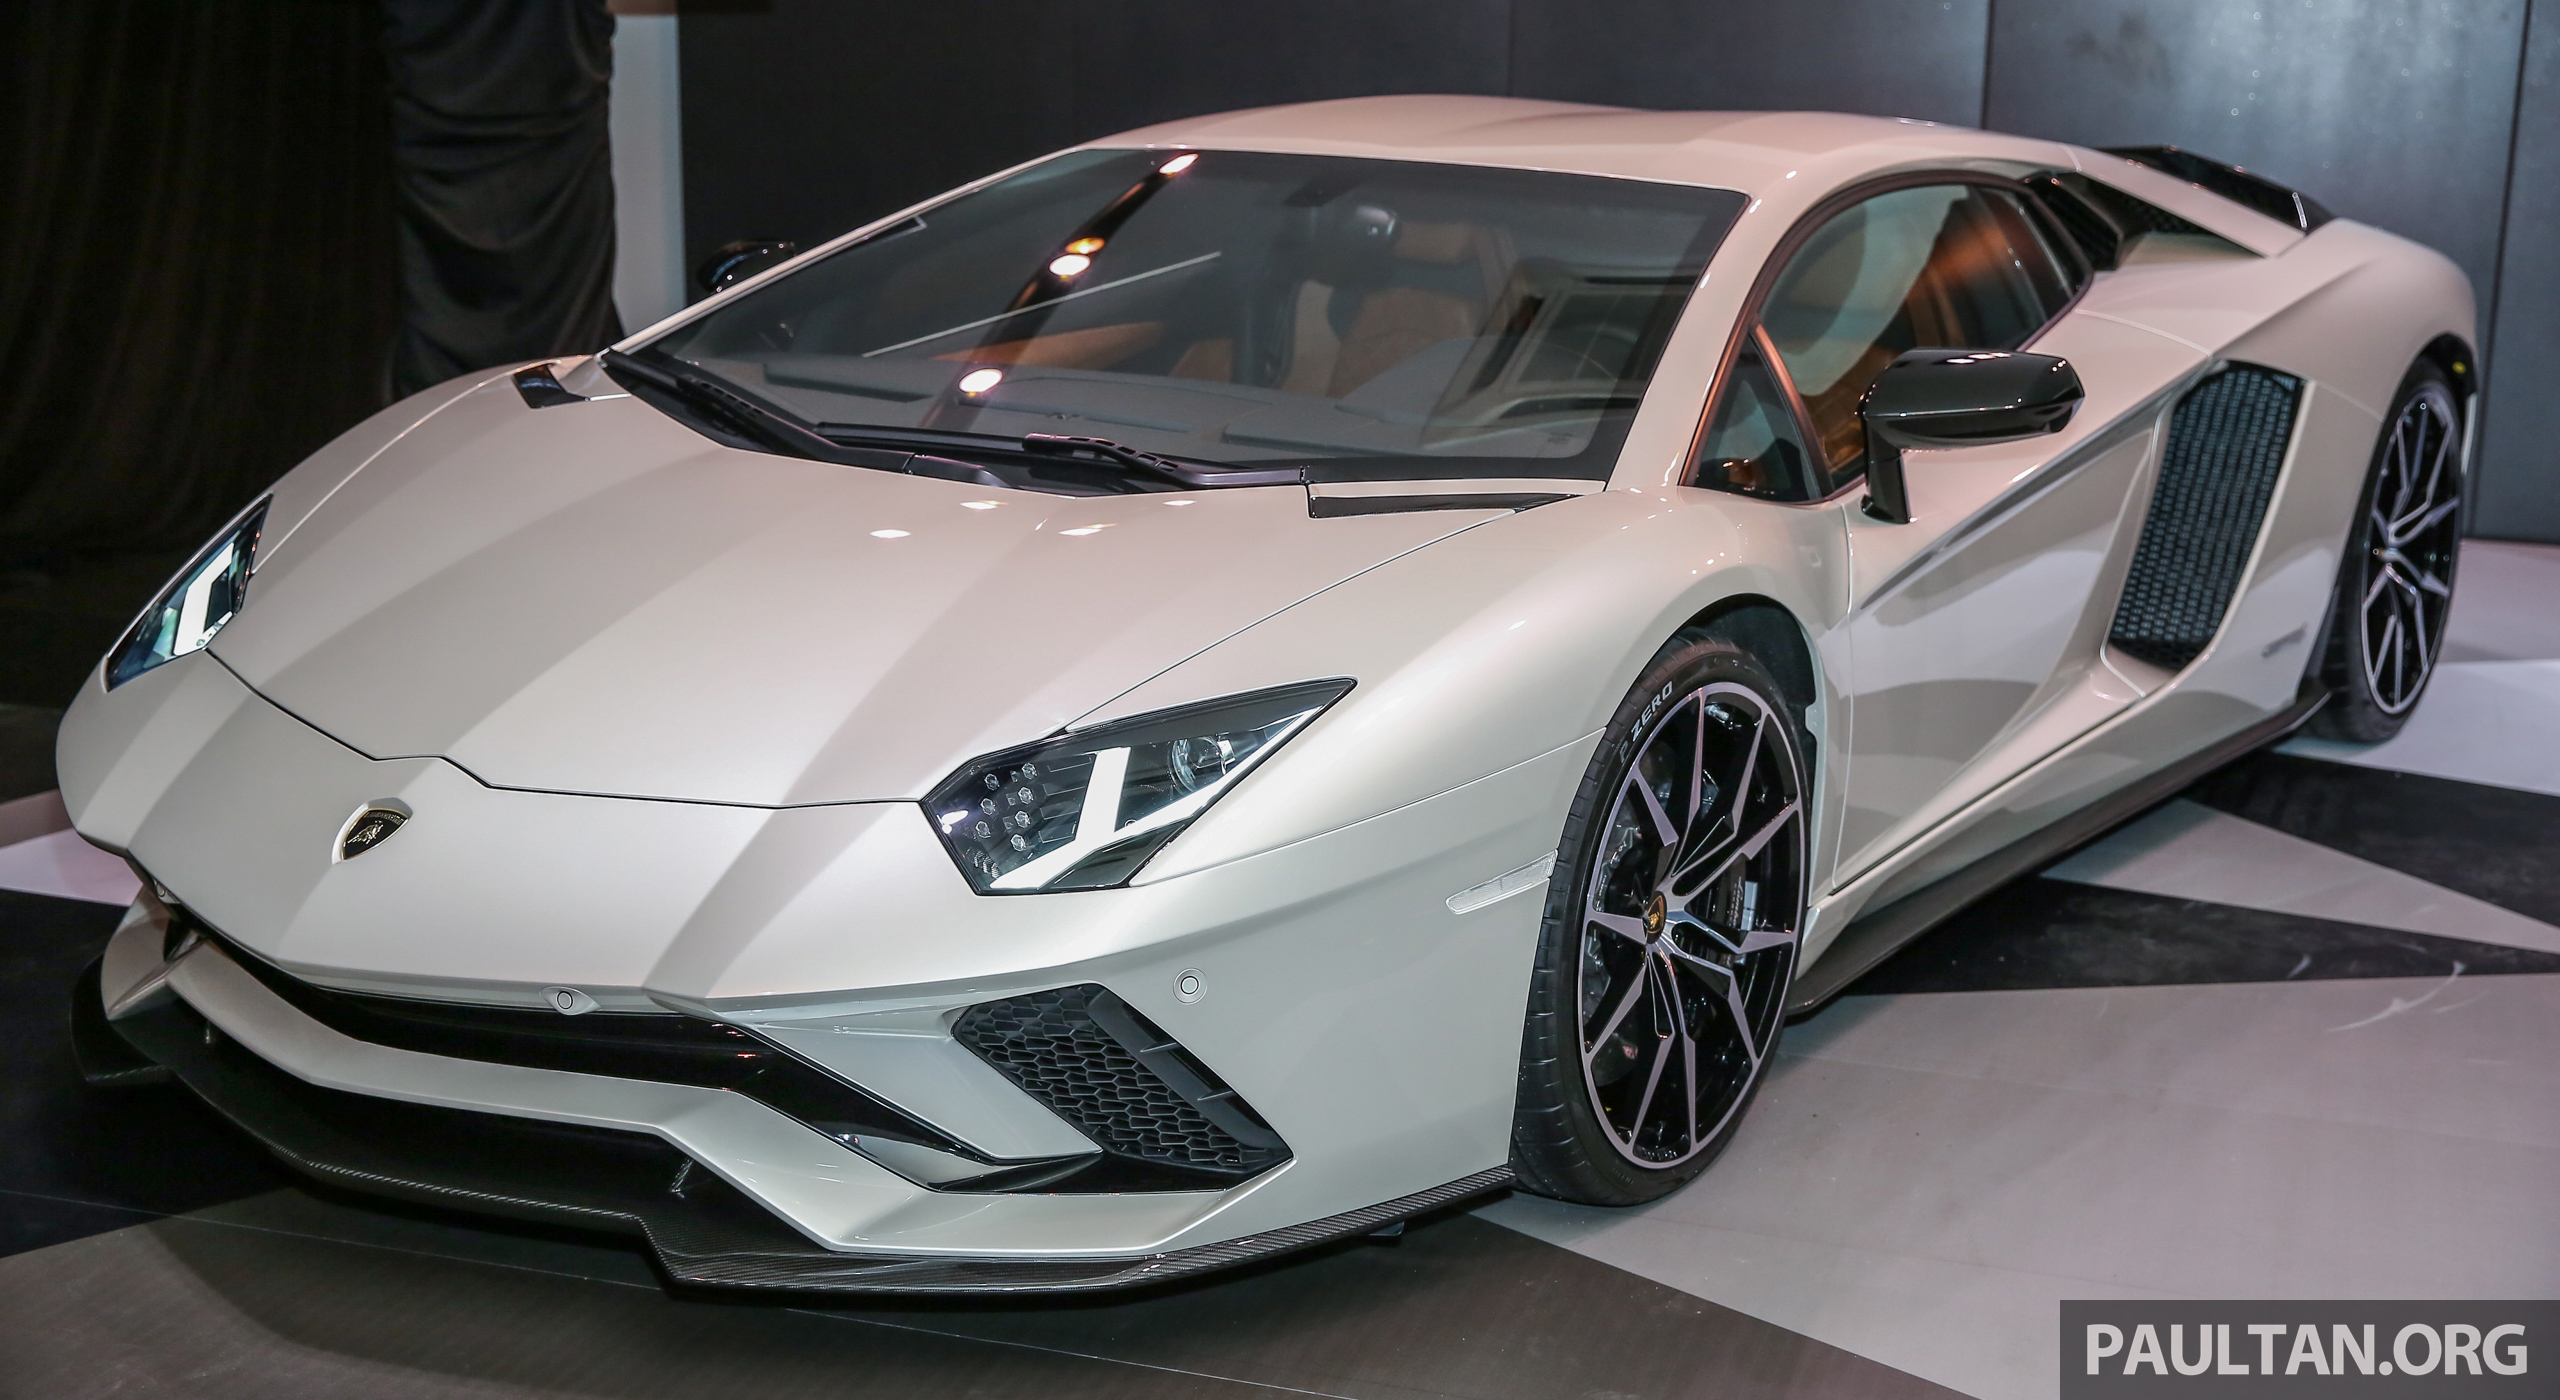 Lamborghini Aventador S Launched In Malaysia From Rm1 8mil 6 5l V12 740 Hp 0 100 Km H In 2 9 S Paultan Org